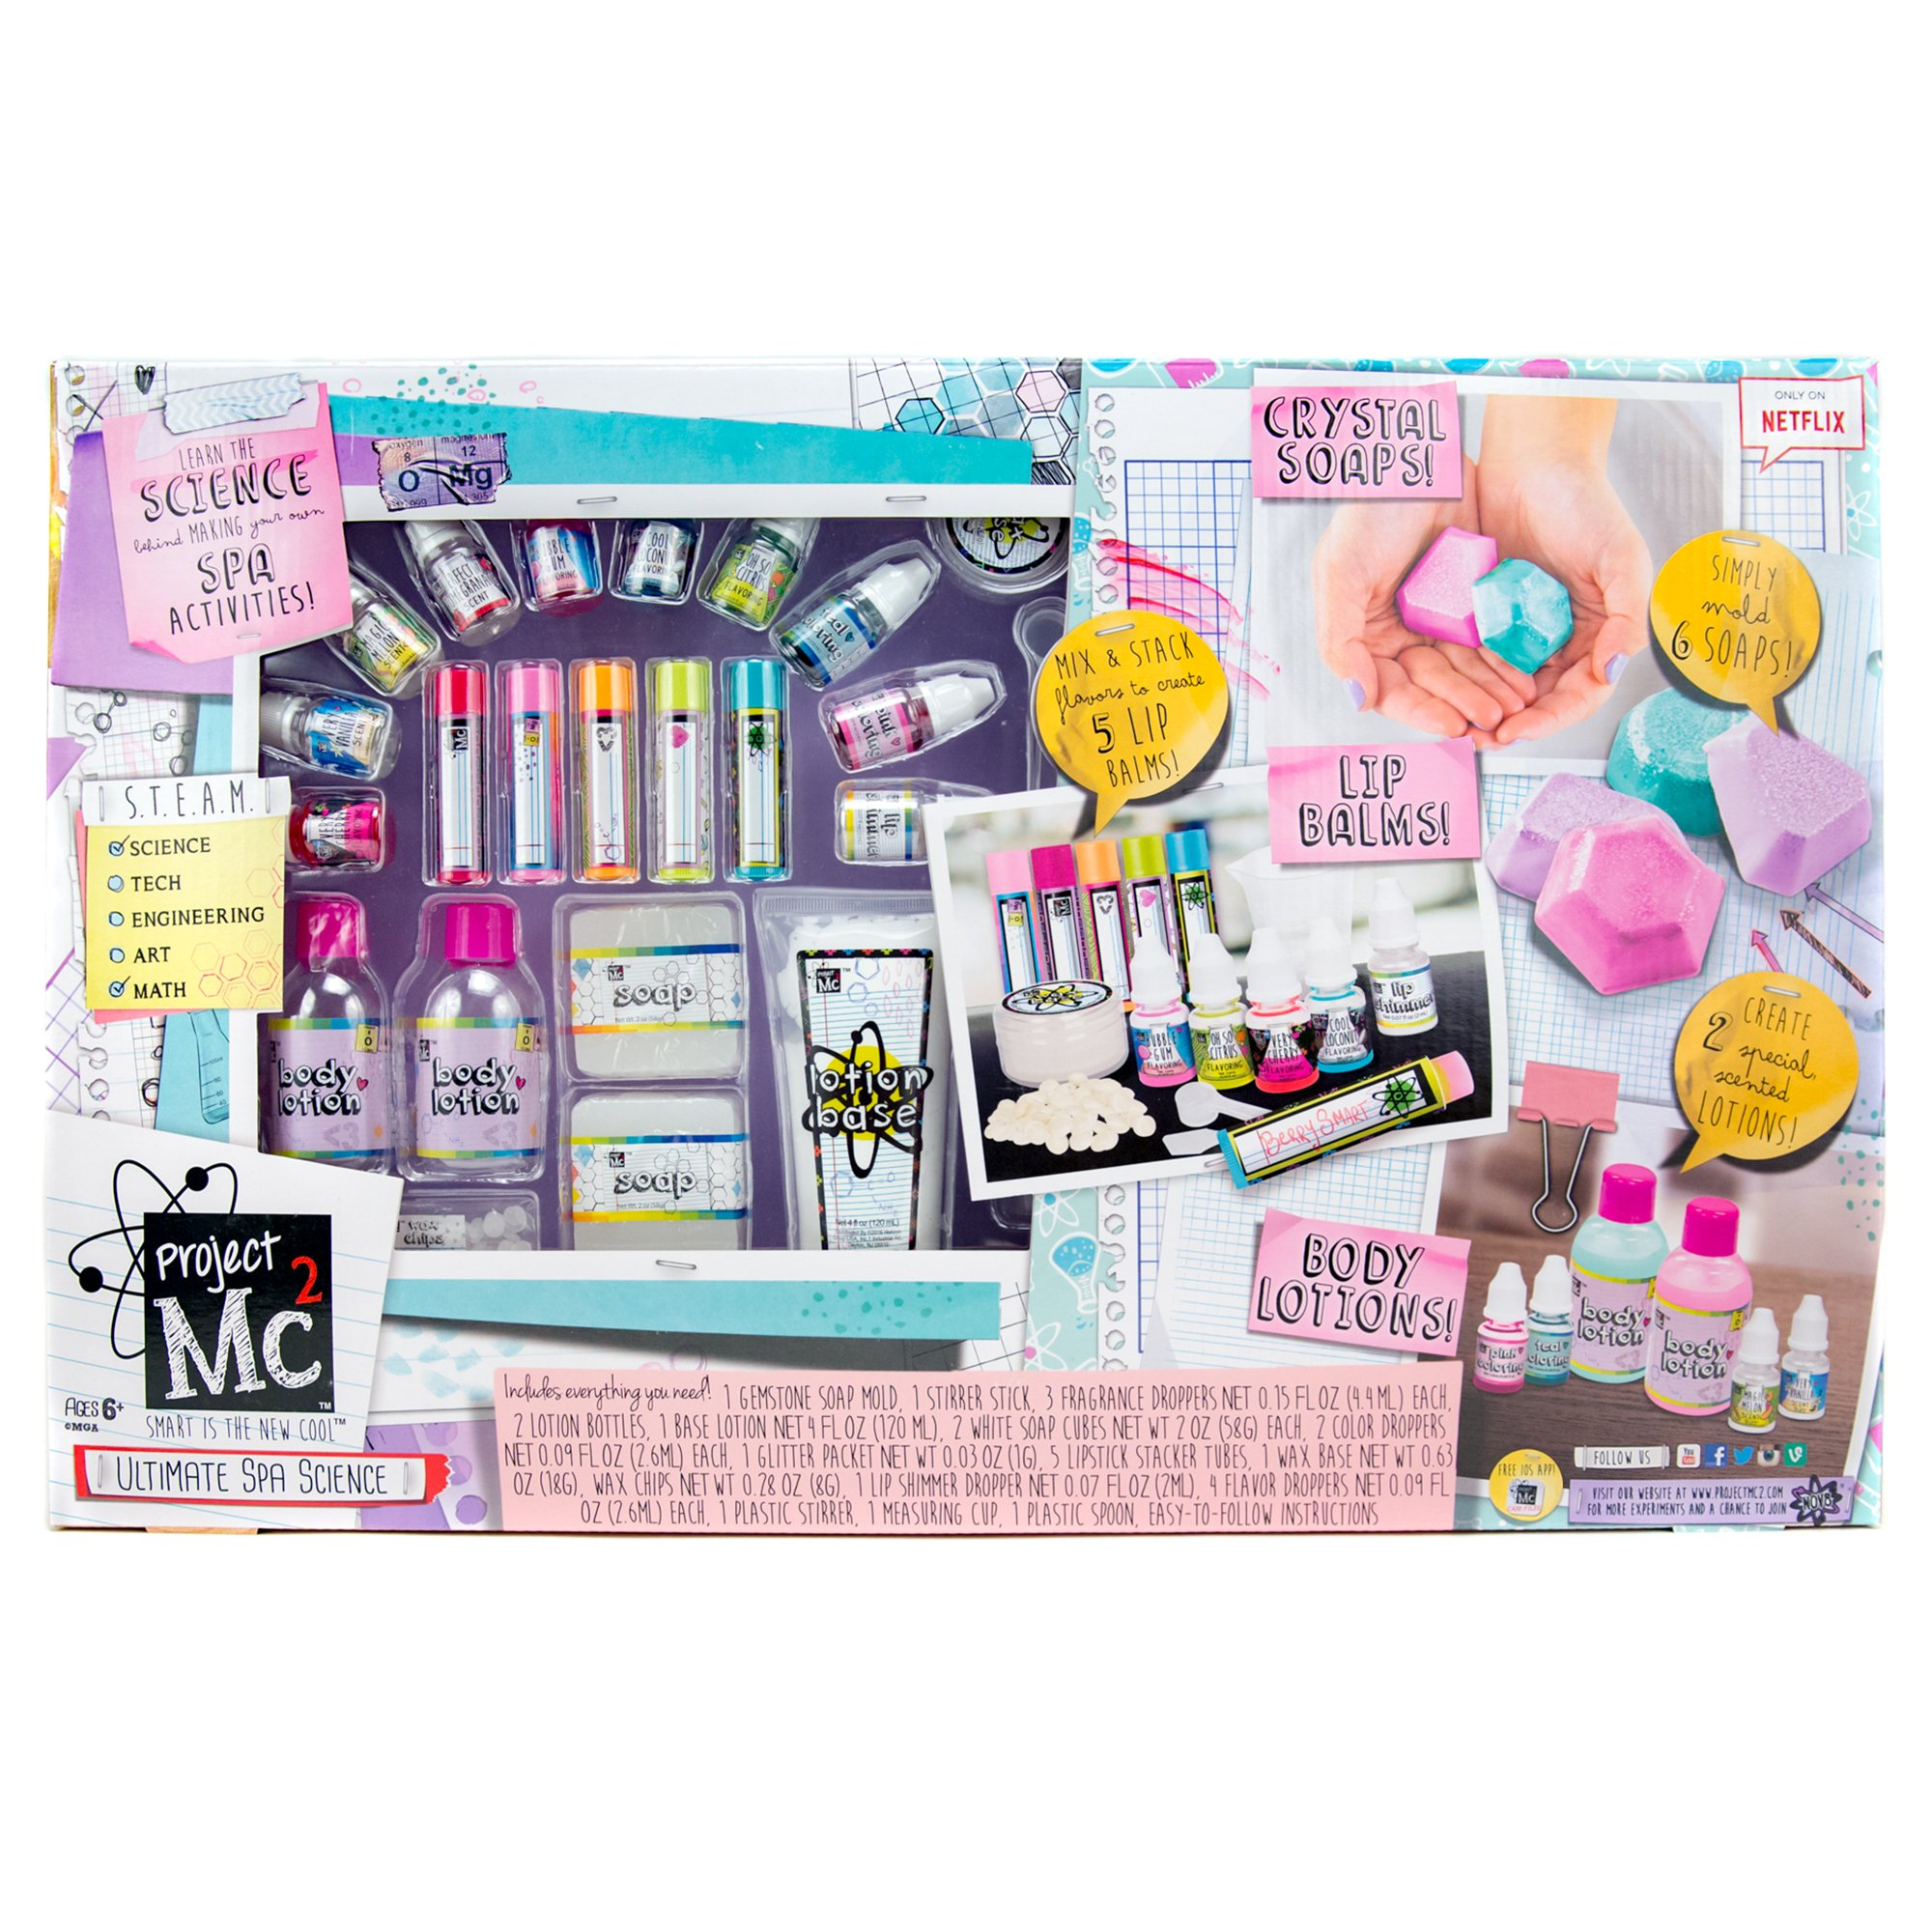 Project Mc2 Ultimate Spa Studio Stem Science Cosmetic Kit by Horizon Group USA, Make Your Own Crystal Soaps,5 DIY Lip Balms & Fragrant Body Lotions, Choose Between 6 Scents & More, Multicolored by Project Mc2